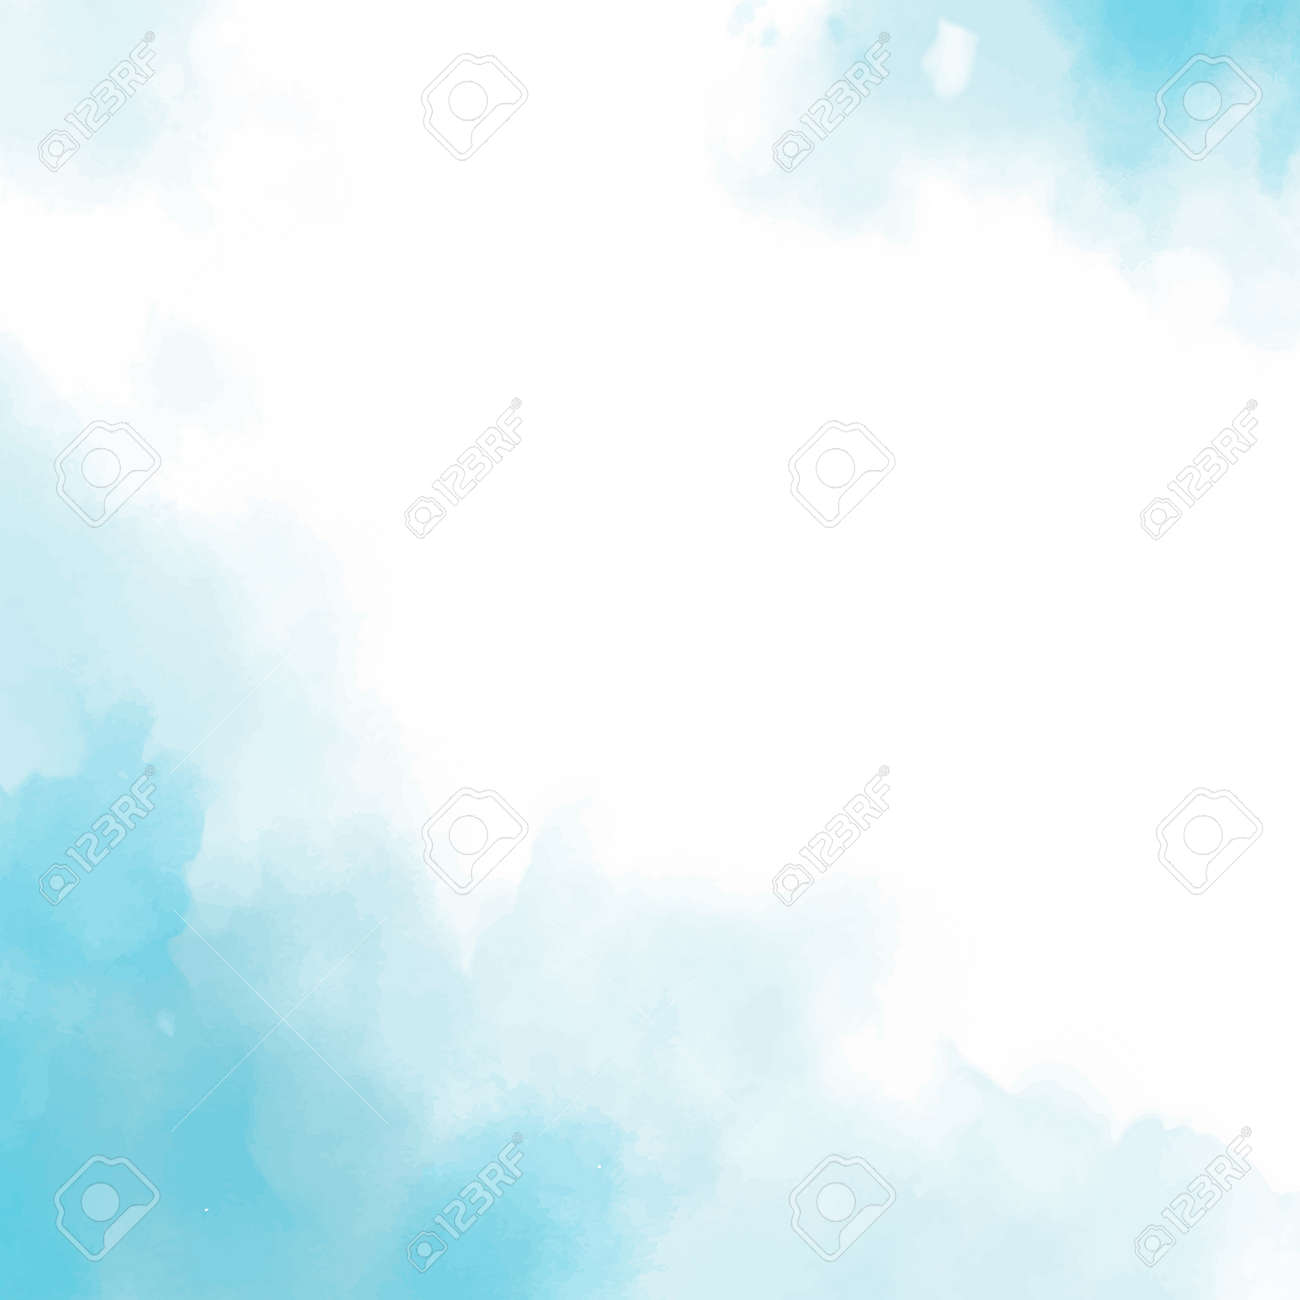 Realistic blue watercolor panoramic texture on white background - Vector illustration - 165750906